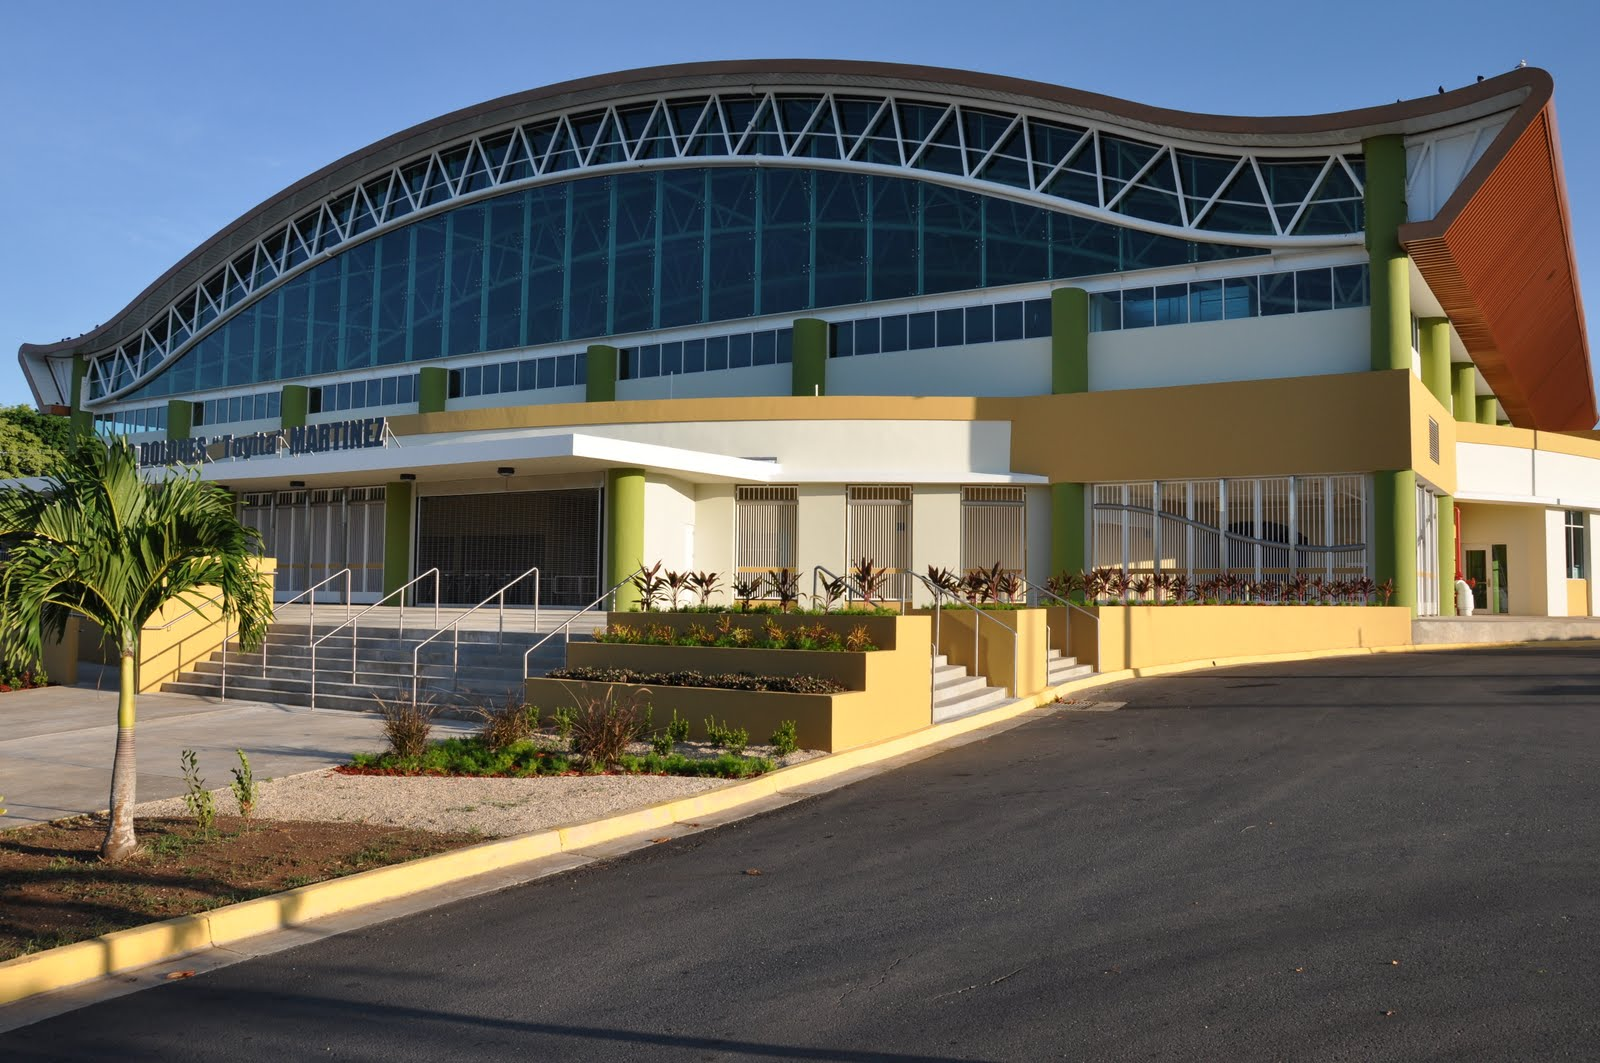 Coliseo Municipal